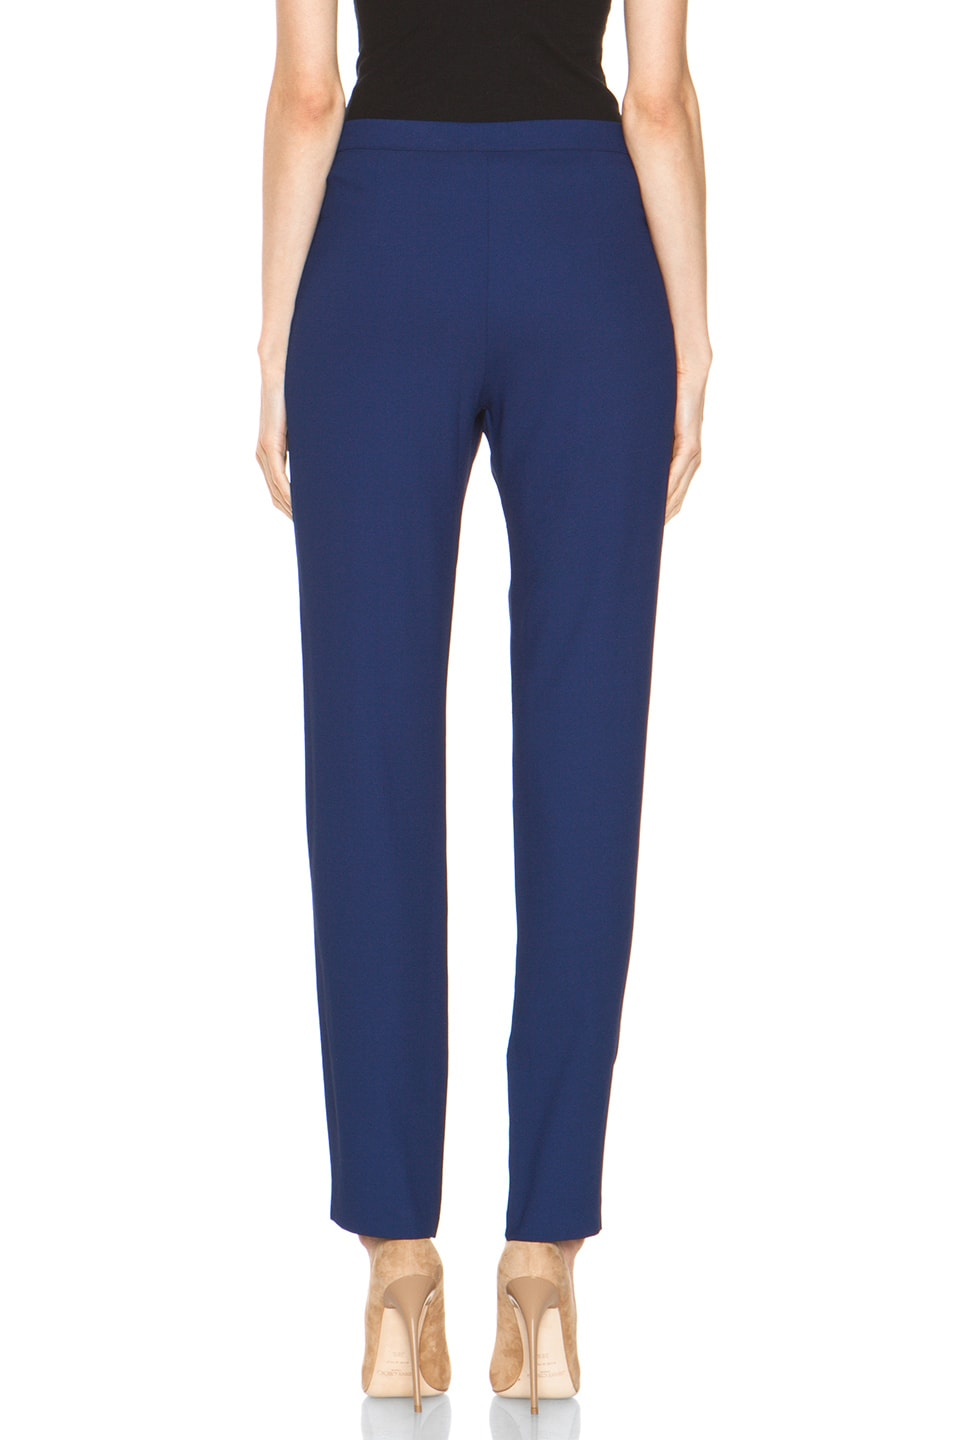 Image 4 of Girl. by Band of Outsiders Ami Pant in Twilight Blue